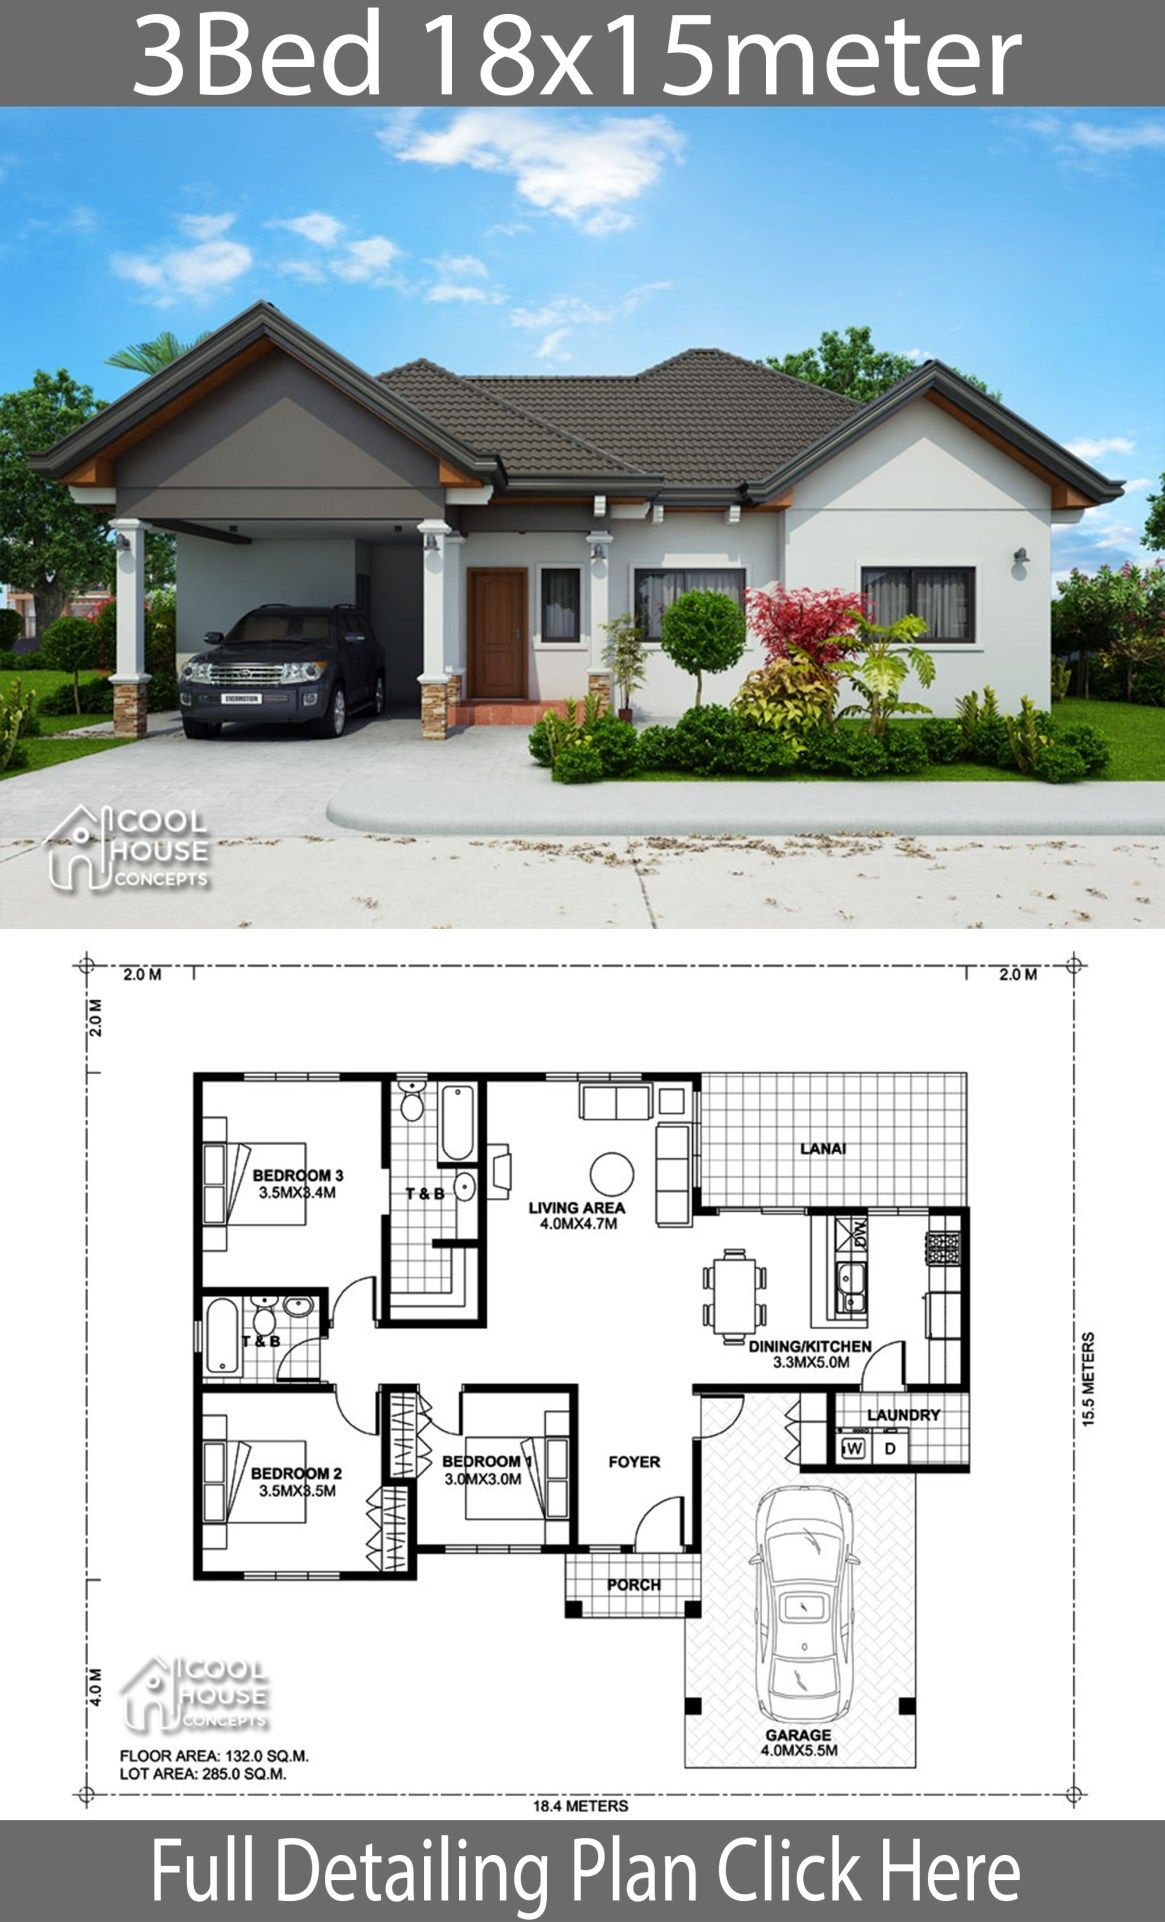 Home Design Plan 18x15m With 3 Bedrooms Home Design With Plansearch Bungalow Style House Plans Philippines House Design My House Plans